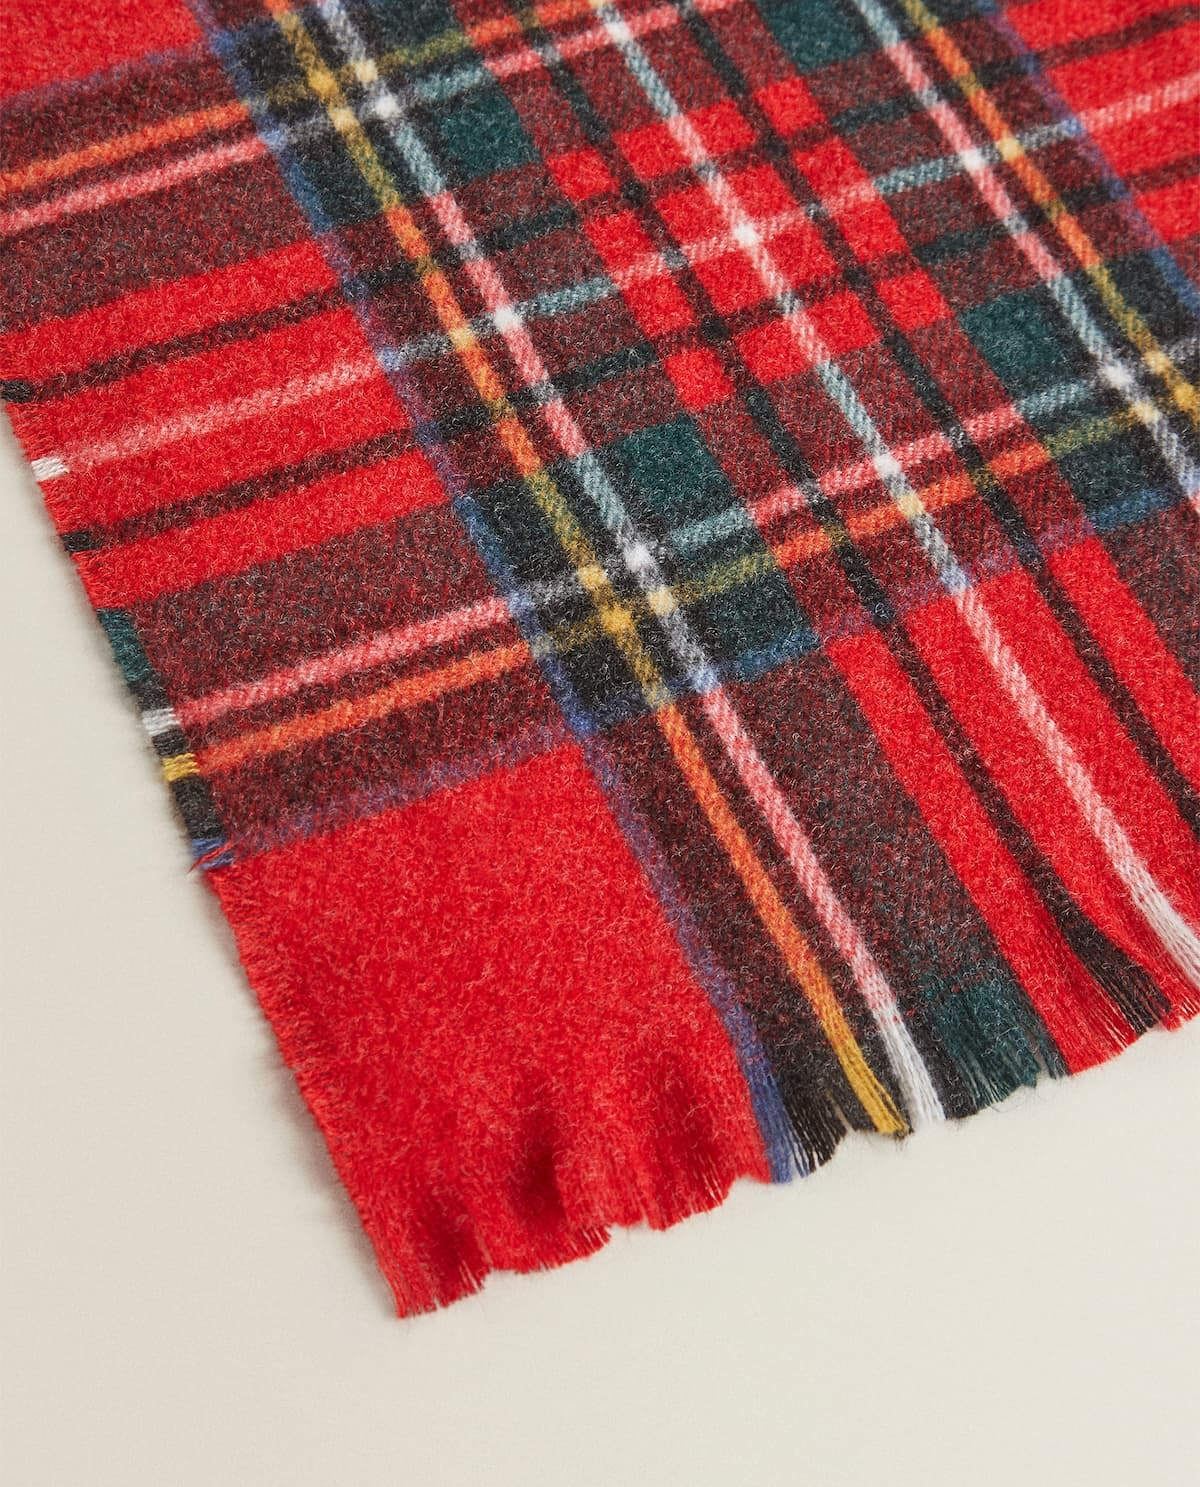 Blanket with a red background and a plaid design.  Fringed edge detail